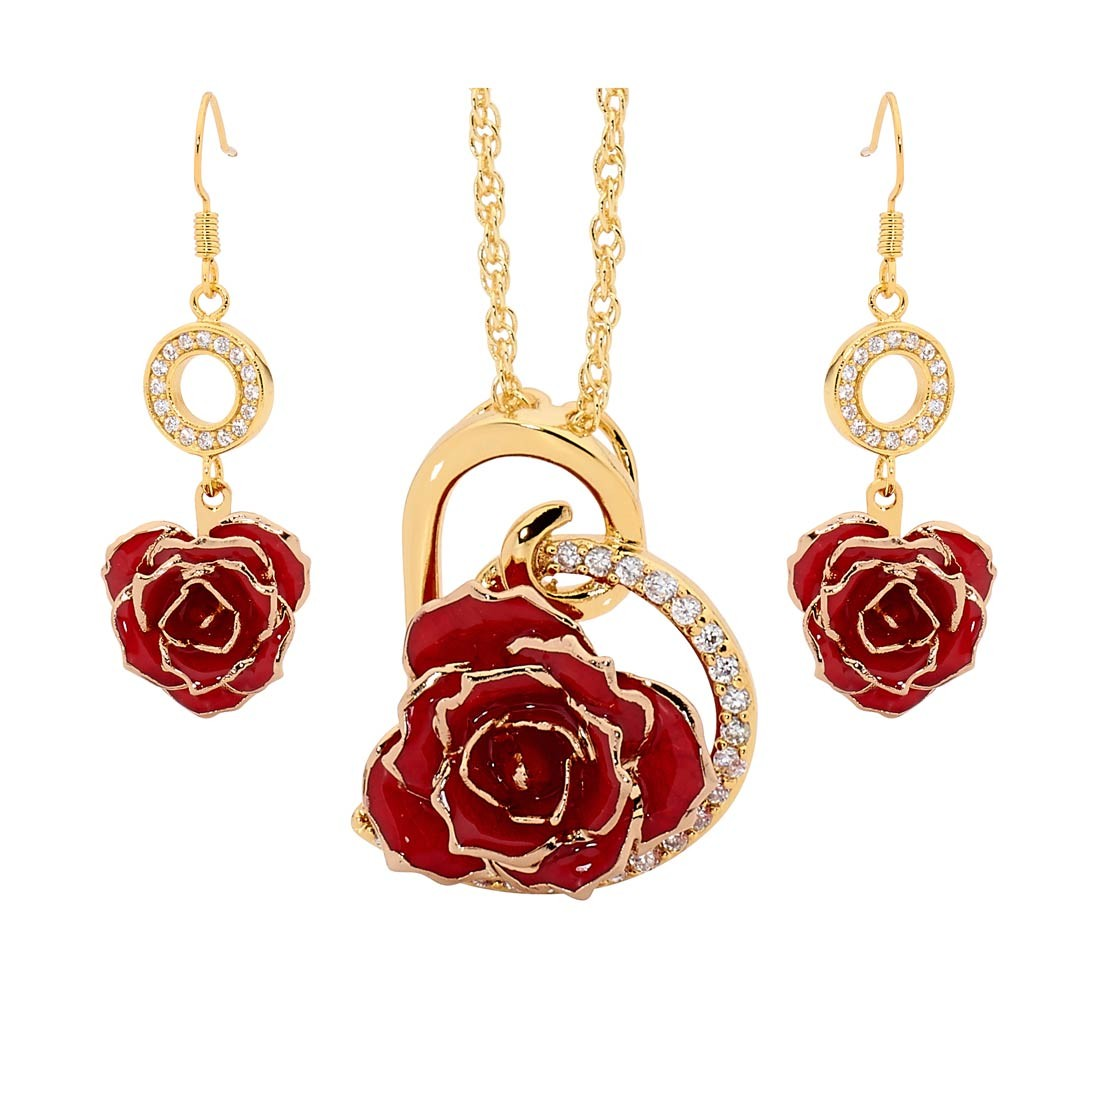 red matching pendant and earring set heart theme 24k gold. Black Bedroom Furniture Sets. Home Design Ideas